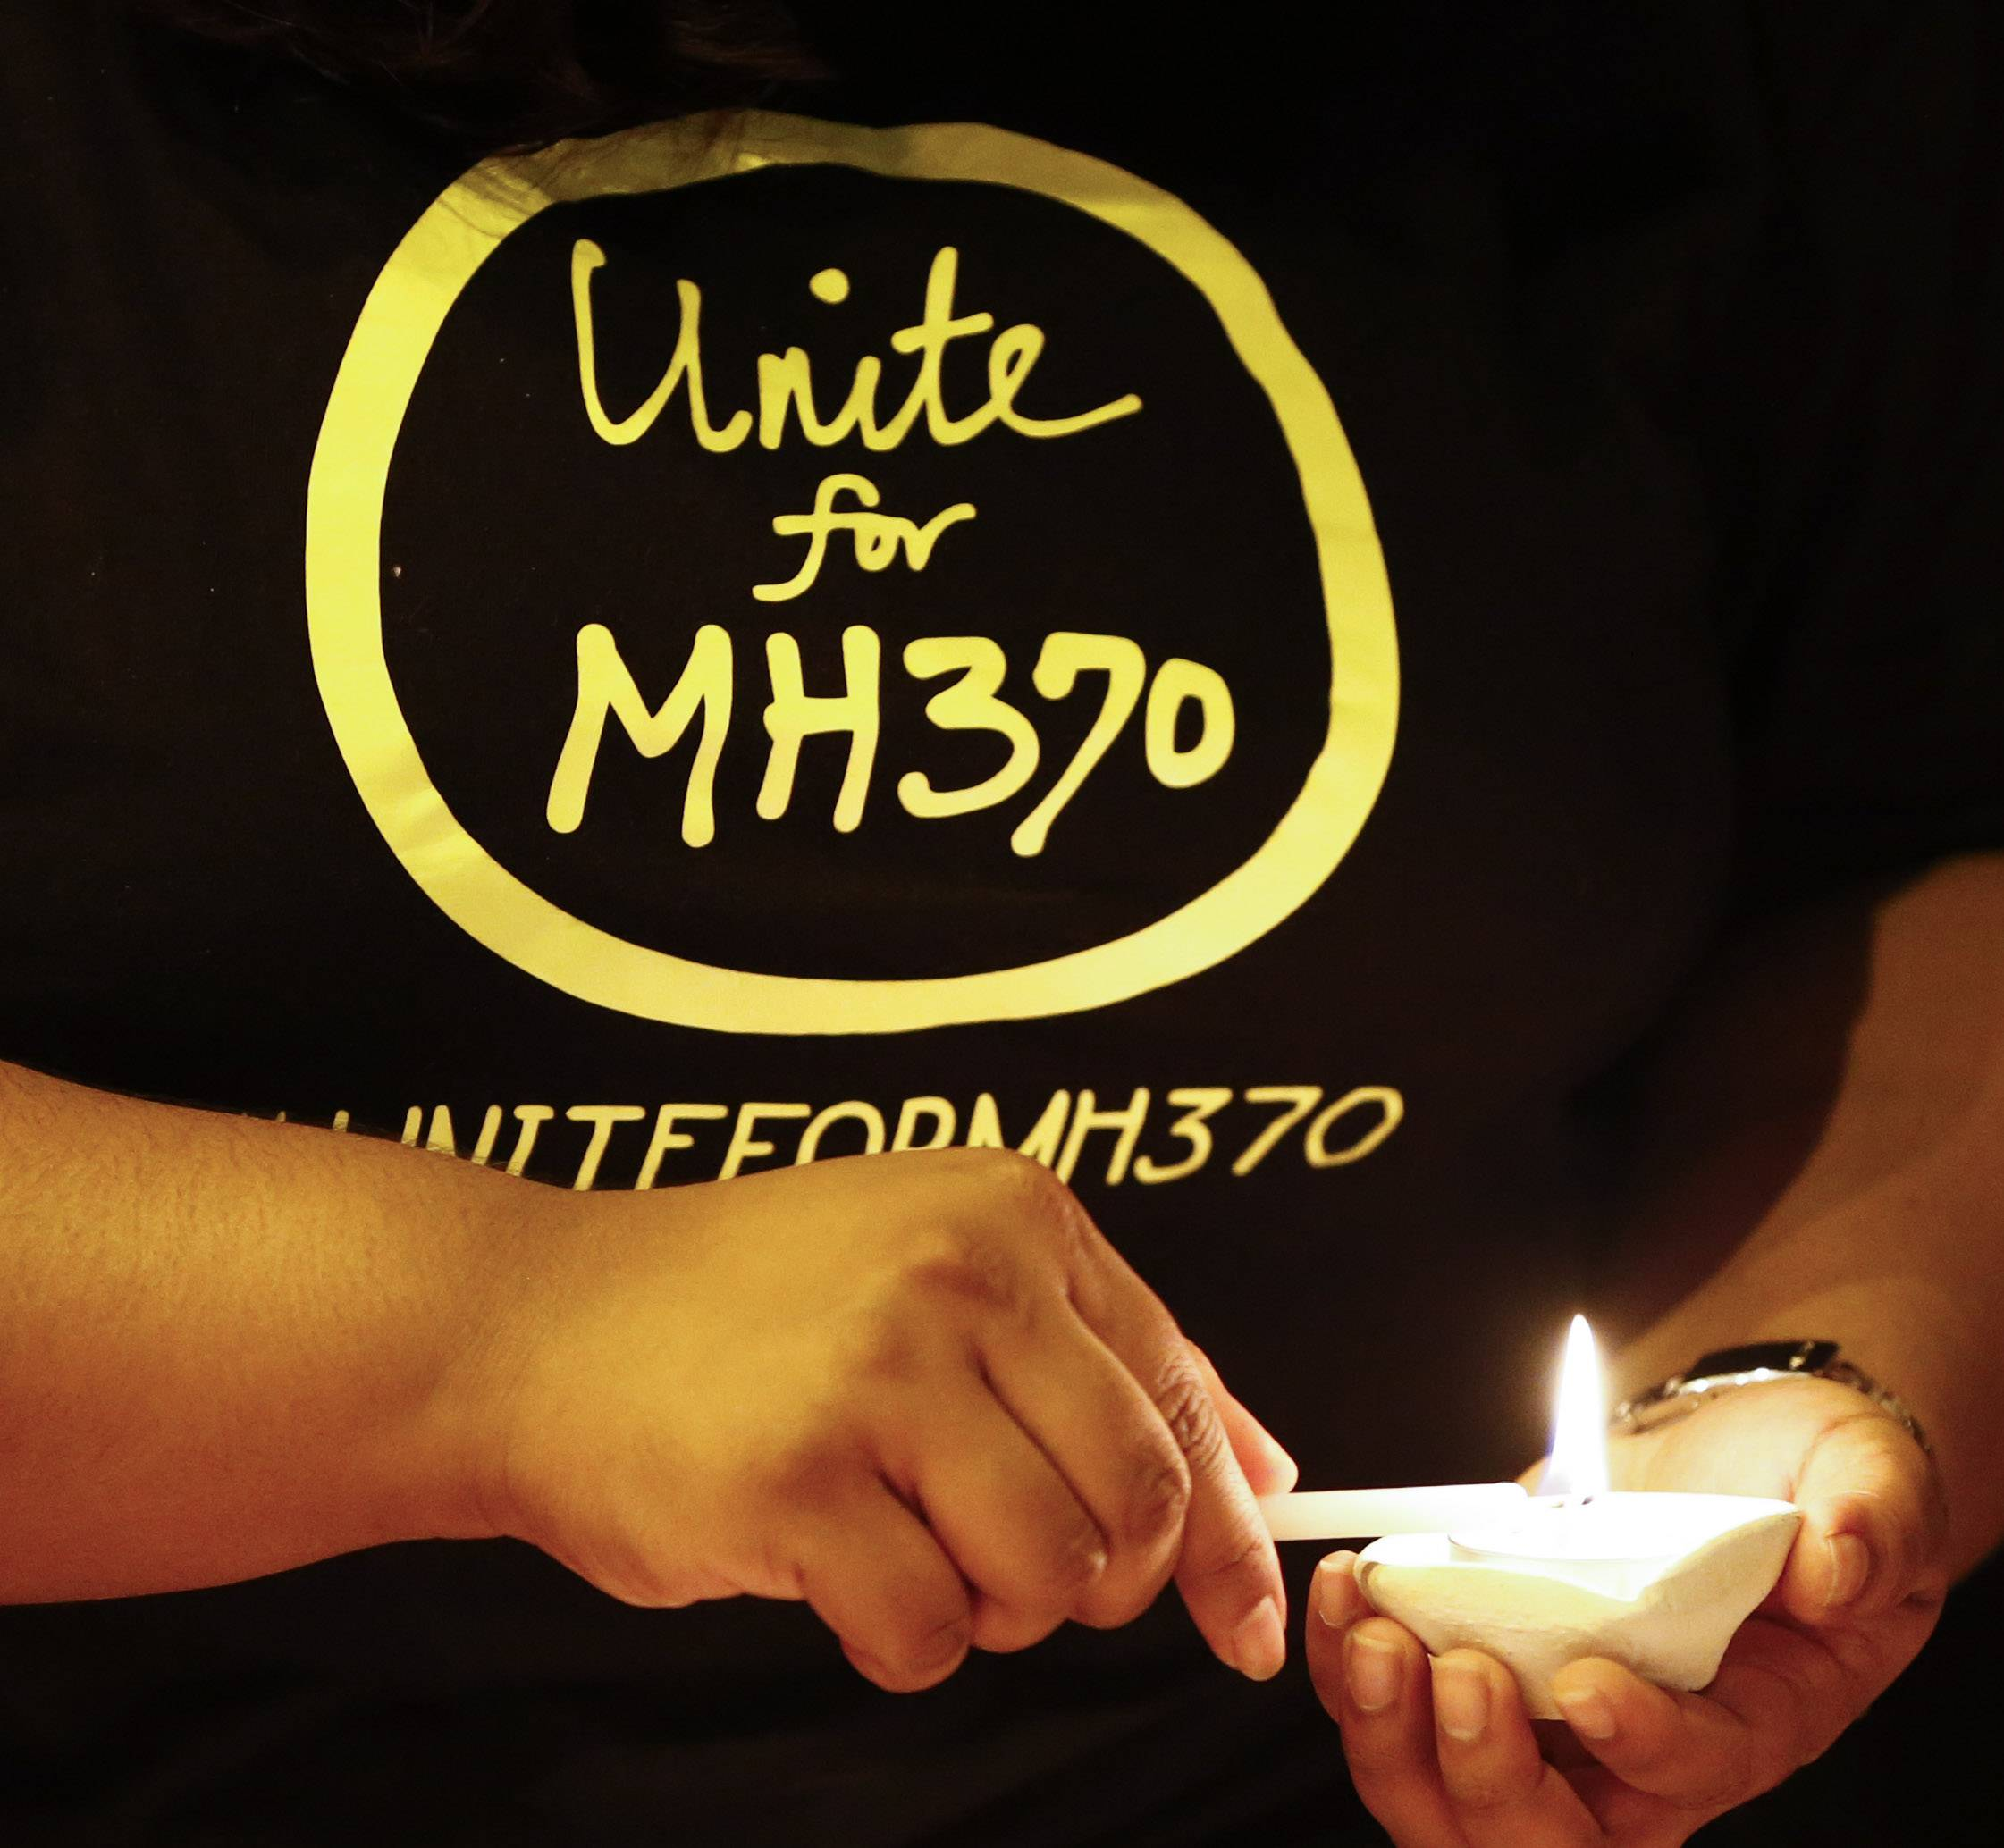 A woman lights a candle during a candlelight vigil for passengers onboard the missing Malaysia Airlines Flight MH370, in Kuala Lumpur, Malaysia, Monday, April 7, 2014. An Australian ship detected two distinct, long-lasting sounds underwater that are consistent with the pings from aircraft black boxes in a major break in the month long hunt for the missing Malaysia Airlines jet, the search coordinator said Monday.